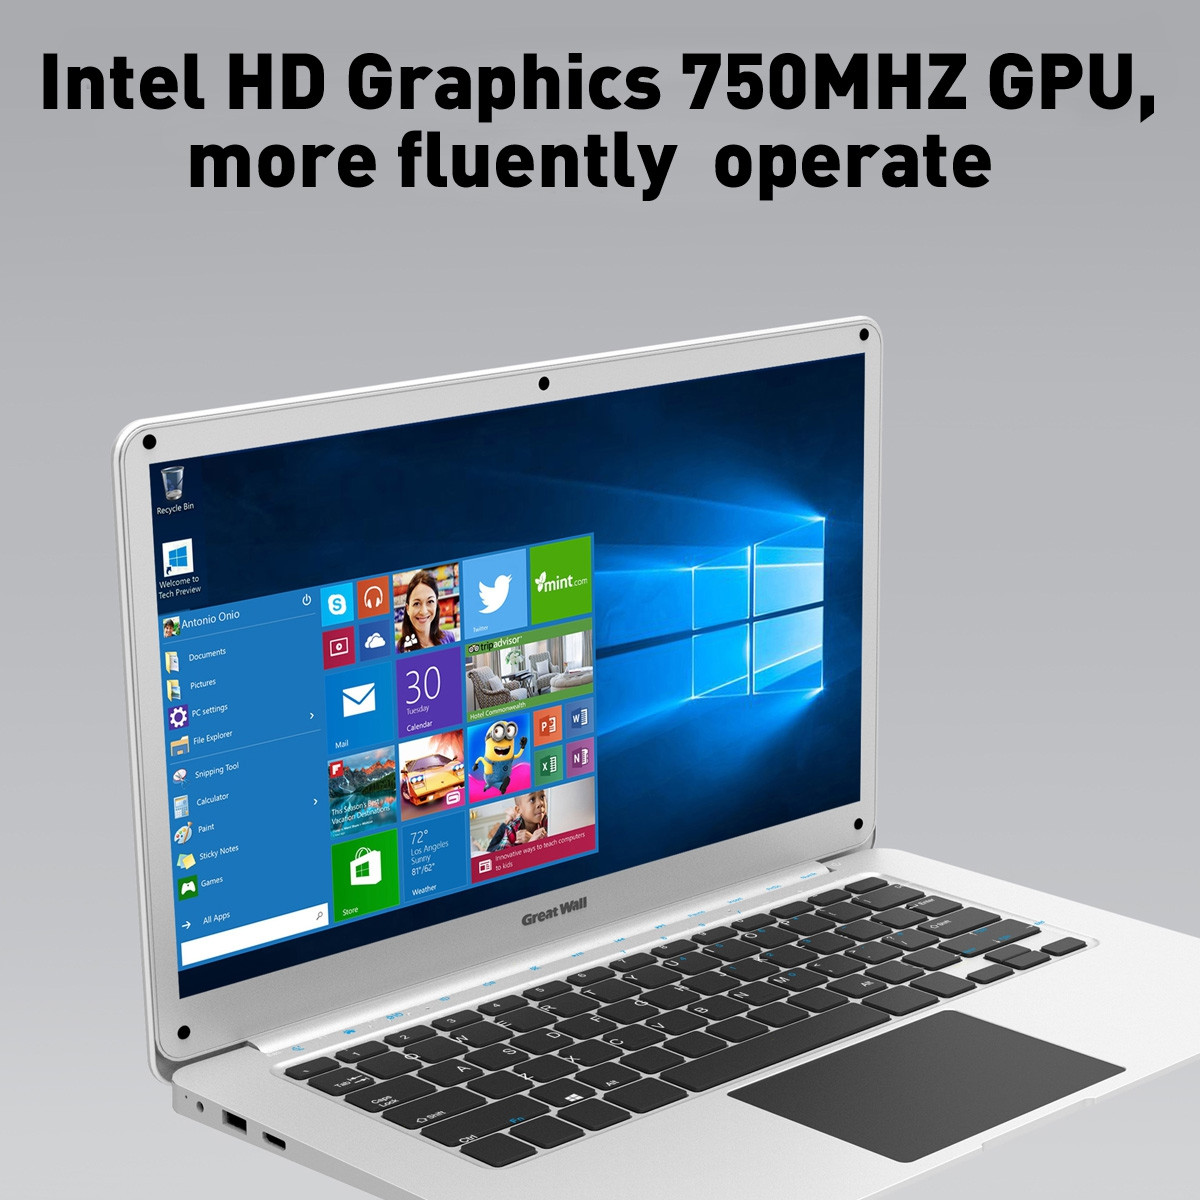 Great Wall W1410A 14 inch Windows 10 Intel Celeron N3350 2.4GHz 4GB 64GB 37W Long-time Battery WIFI BT LAN Notebook Sliver